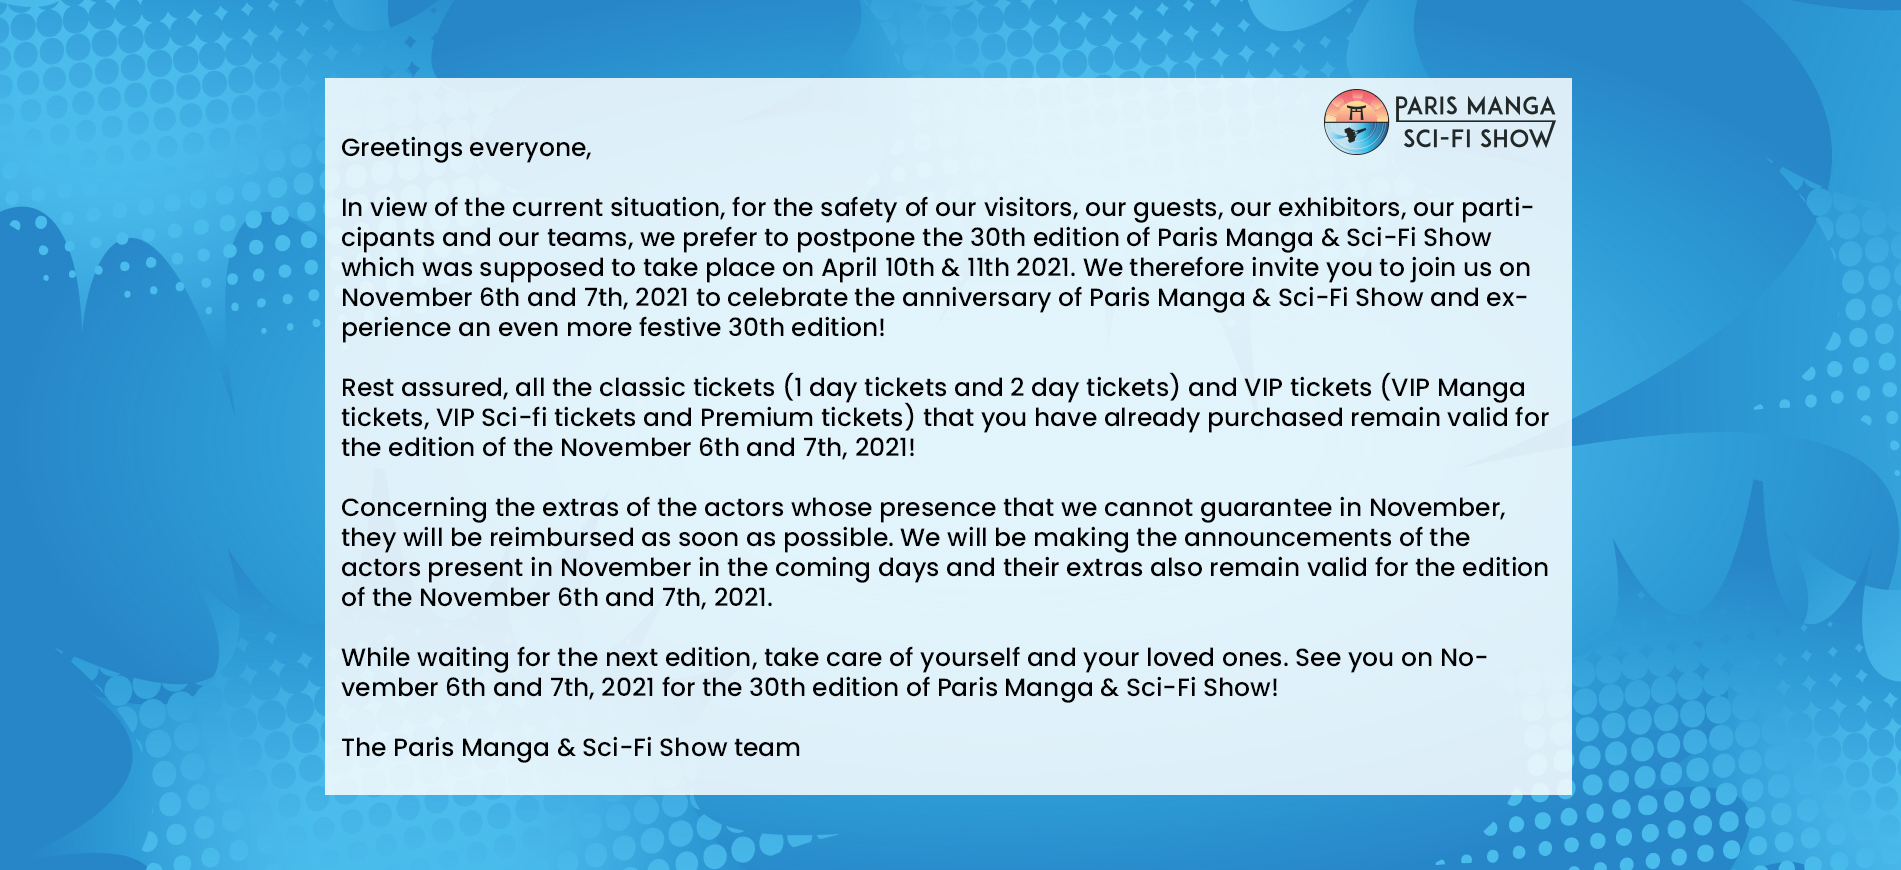 paris-manga-sci-fi-show-postponed-november-2021-en